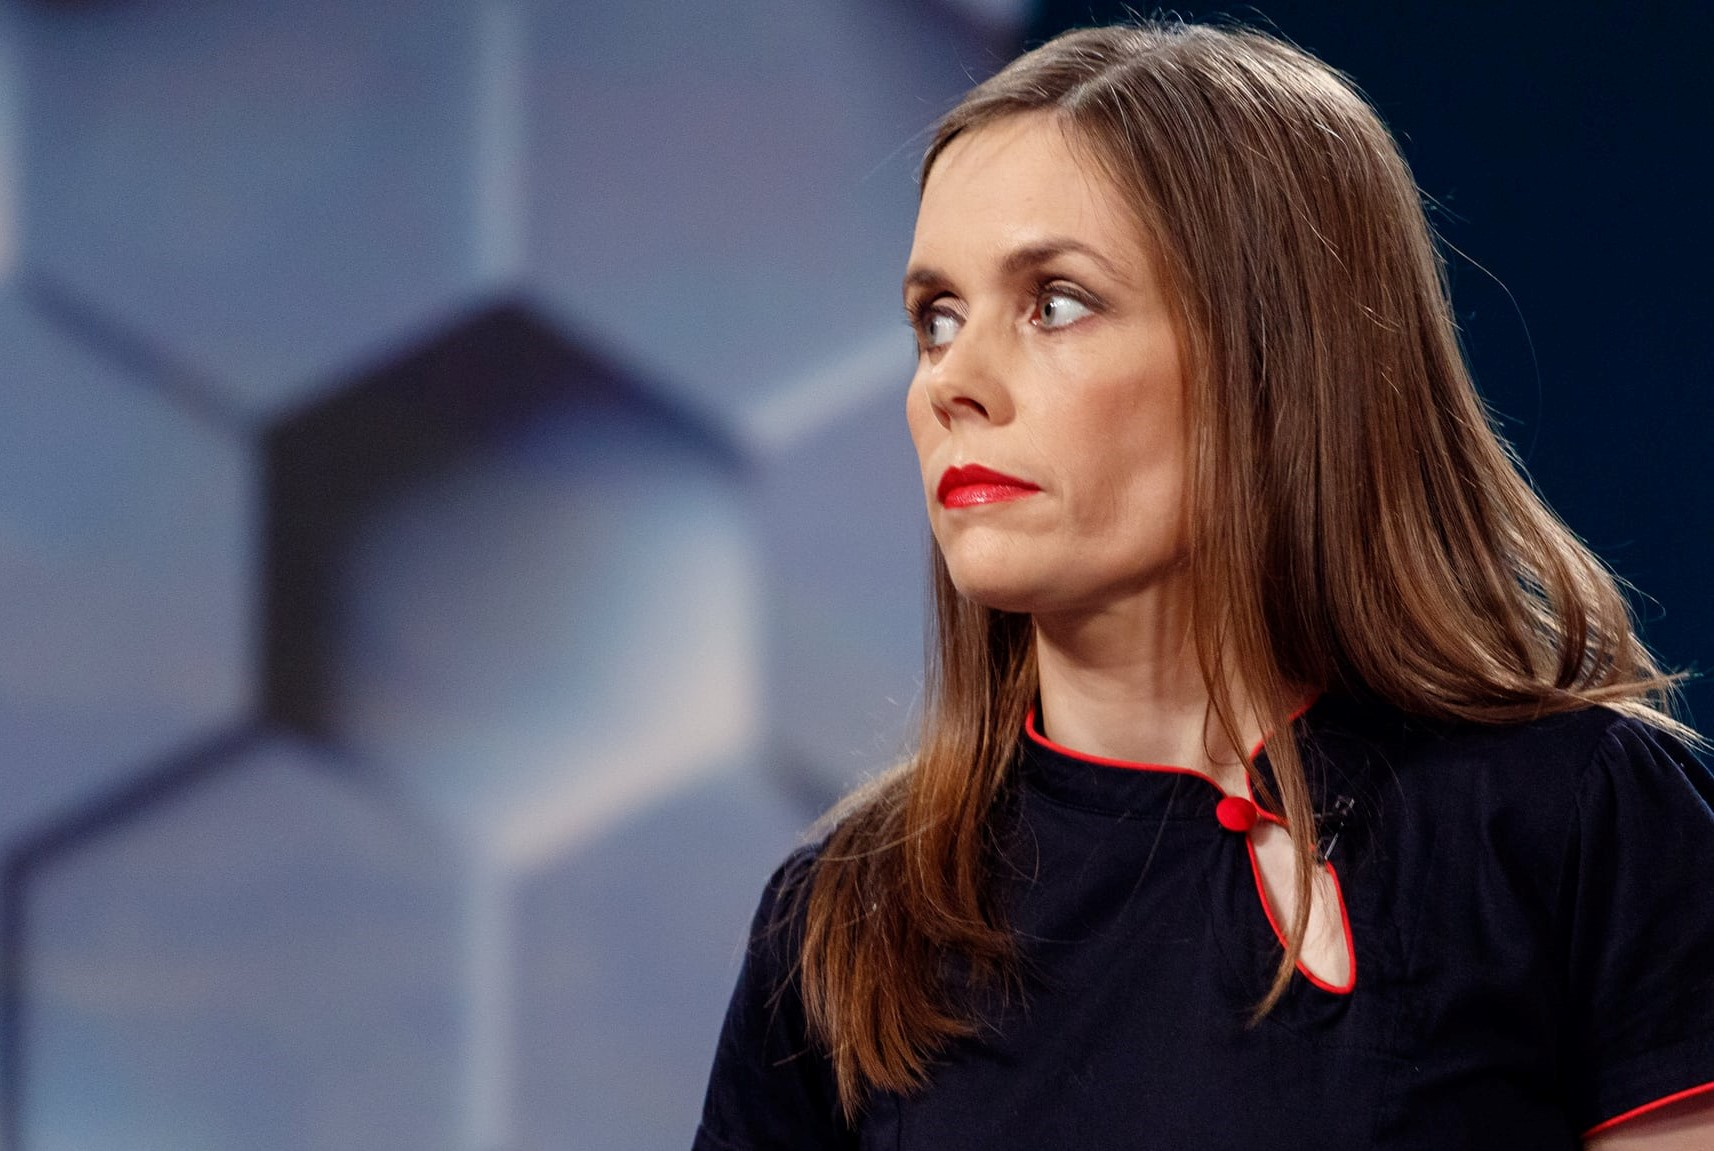 Once more, Iceland has shown it is the best place in the world to be female